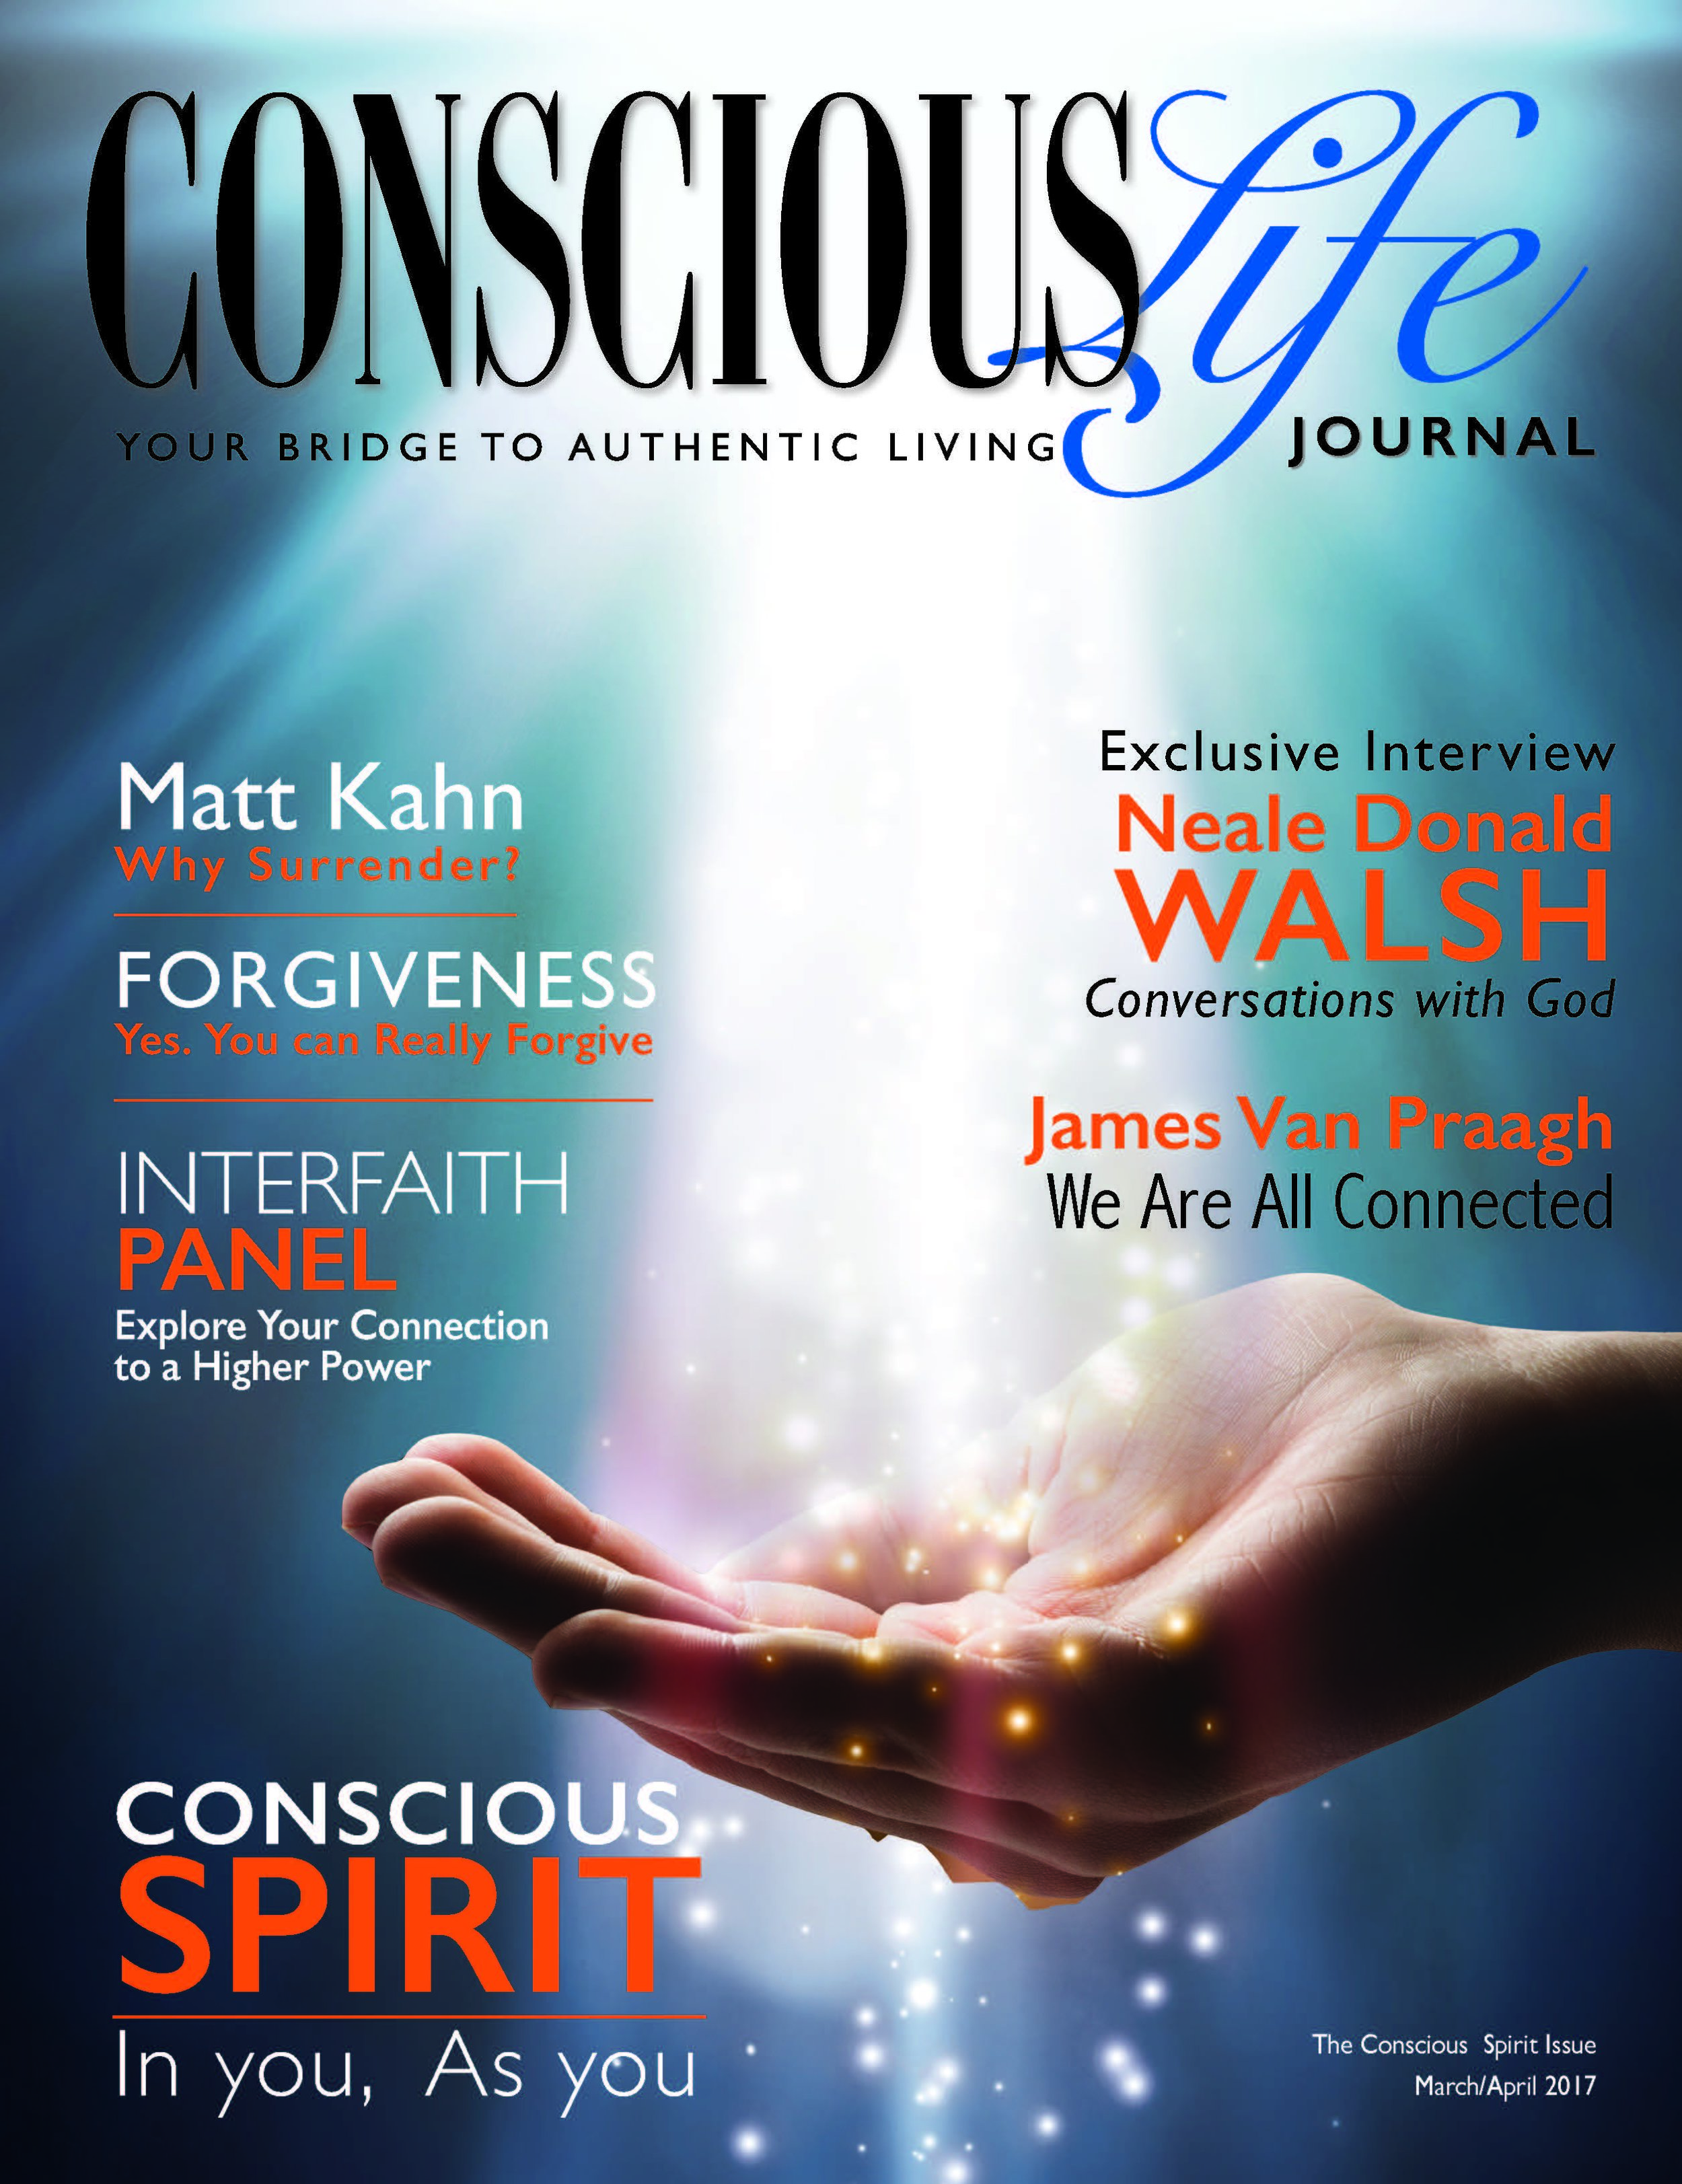 An Article from Conscious Life Journal: Conscious Spirit Issue March/April 2017*